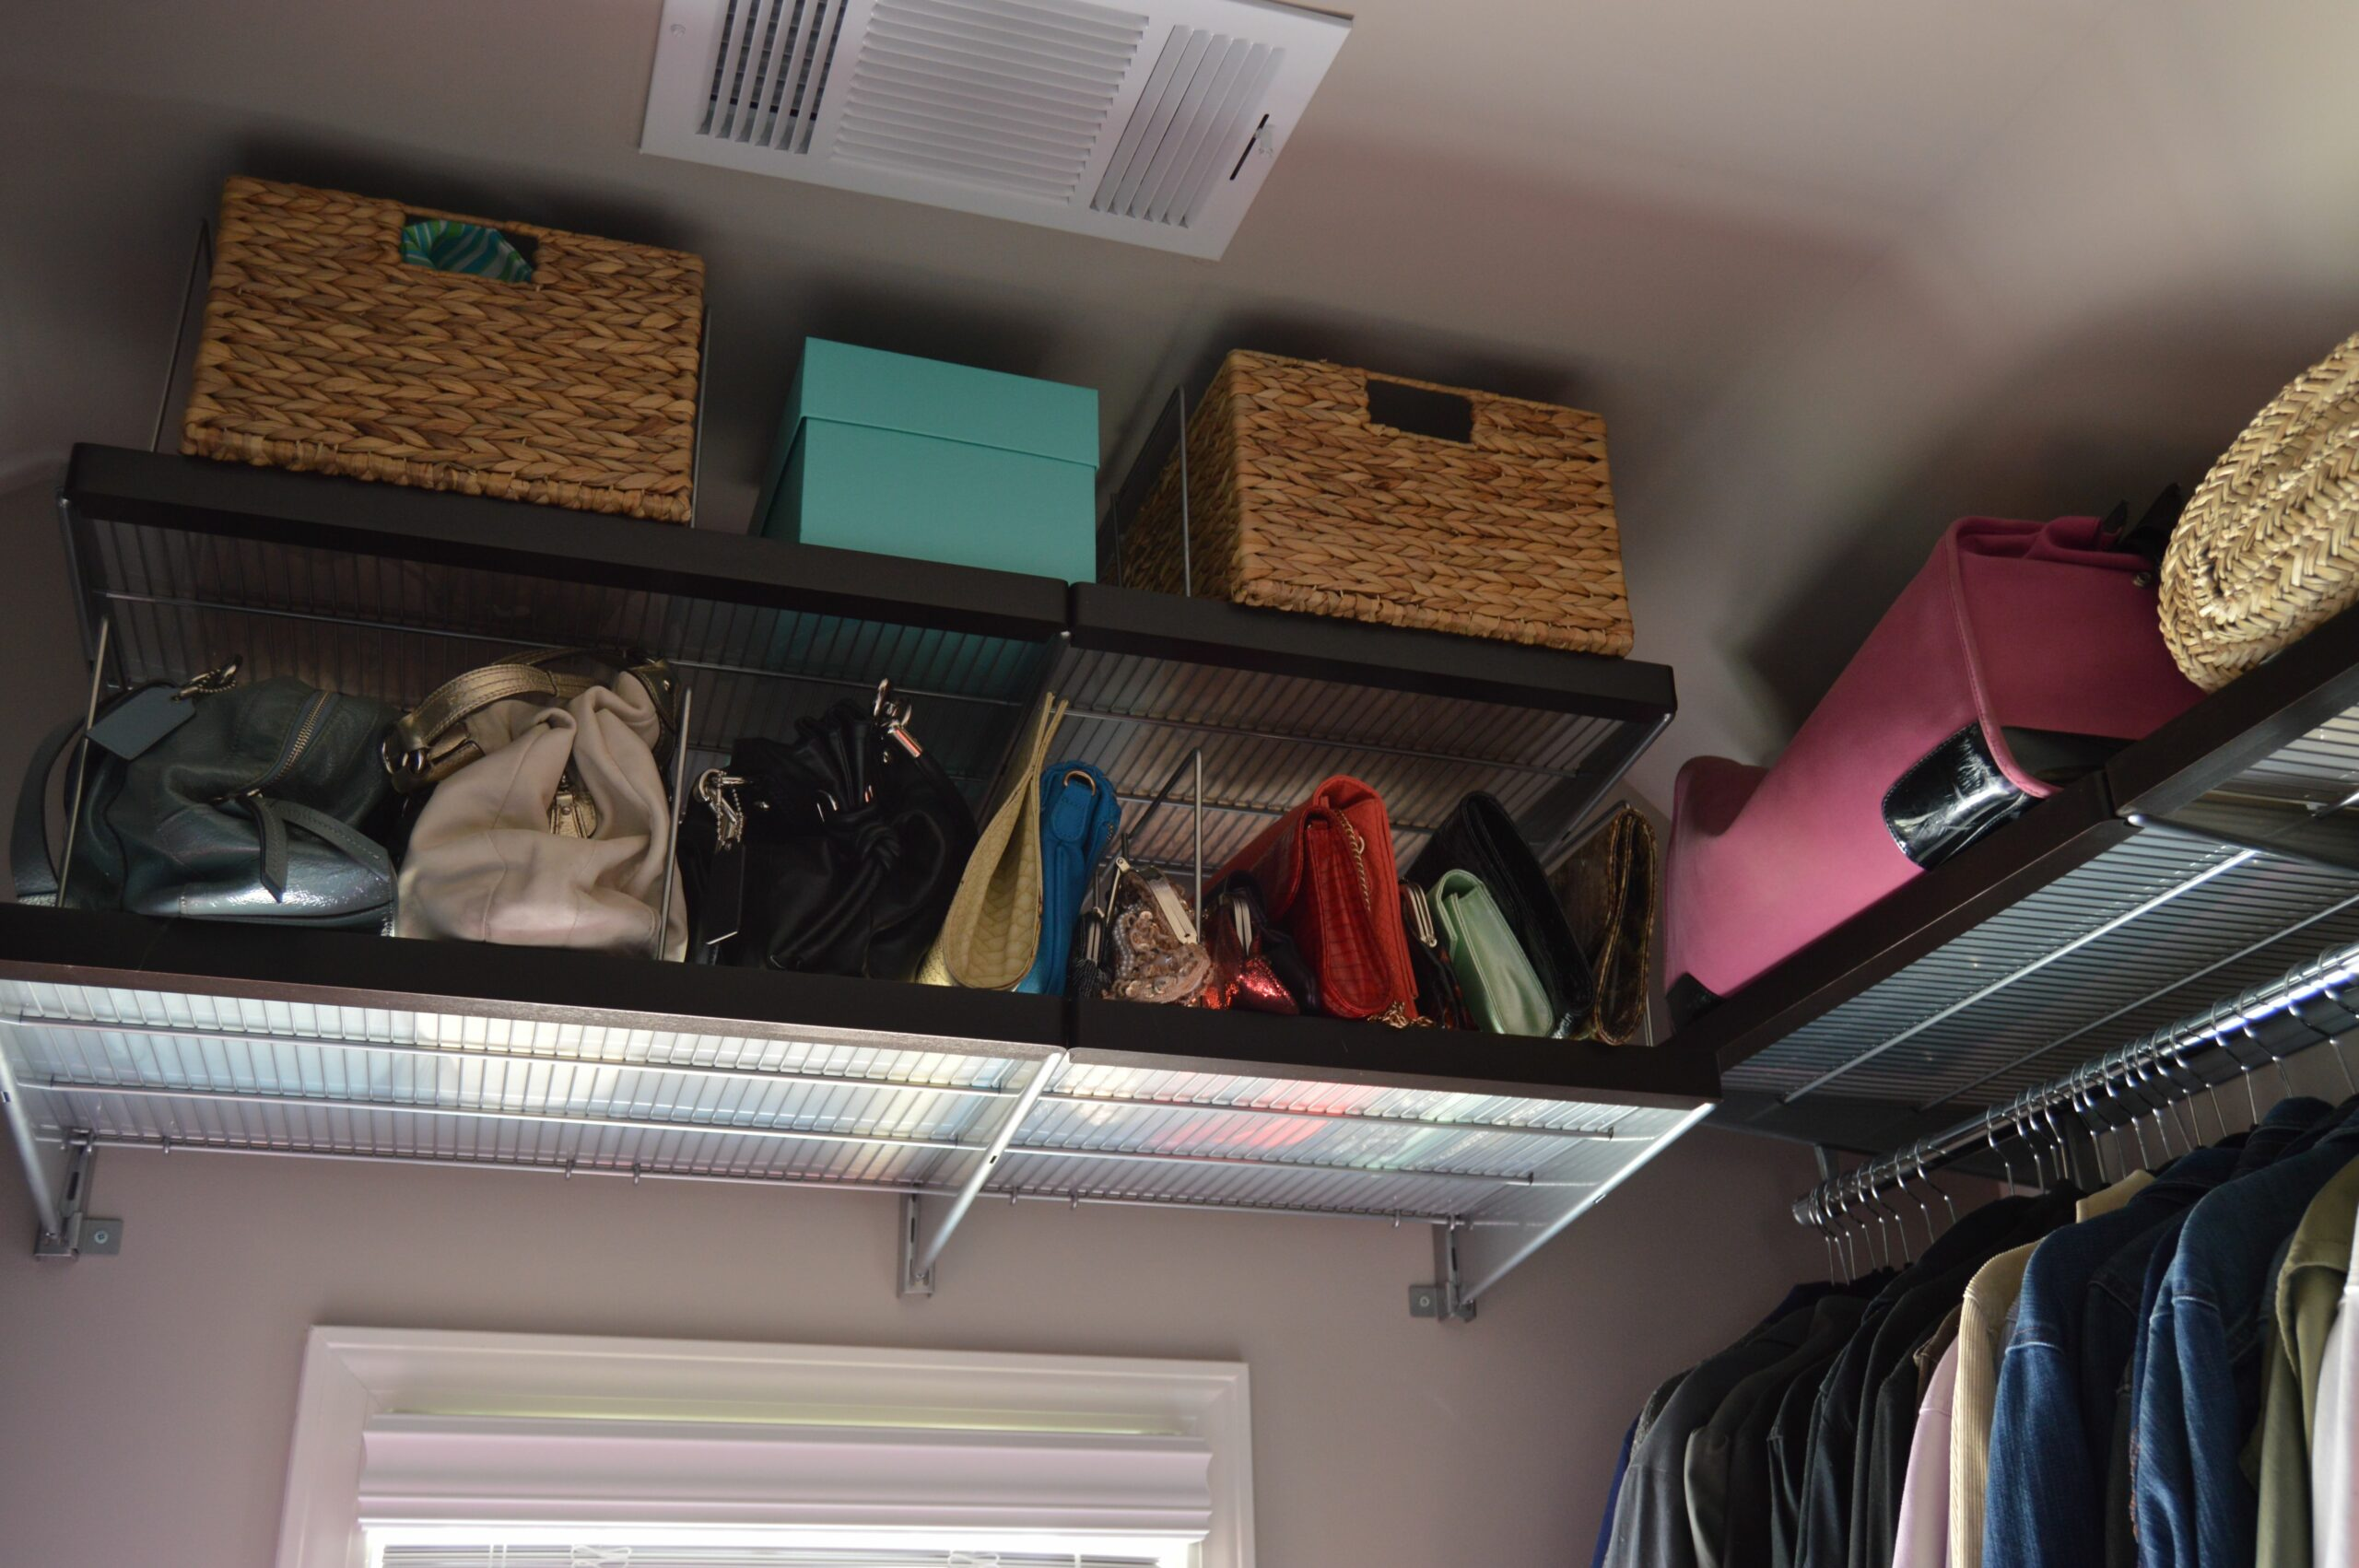 Maximizing Space in a Closet with Vaulted Ceilings | Kelley Nan - vaulted closet ideas